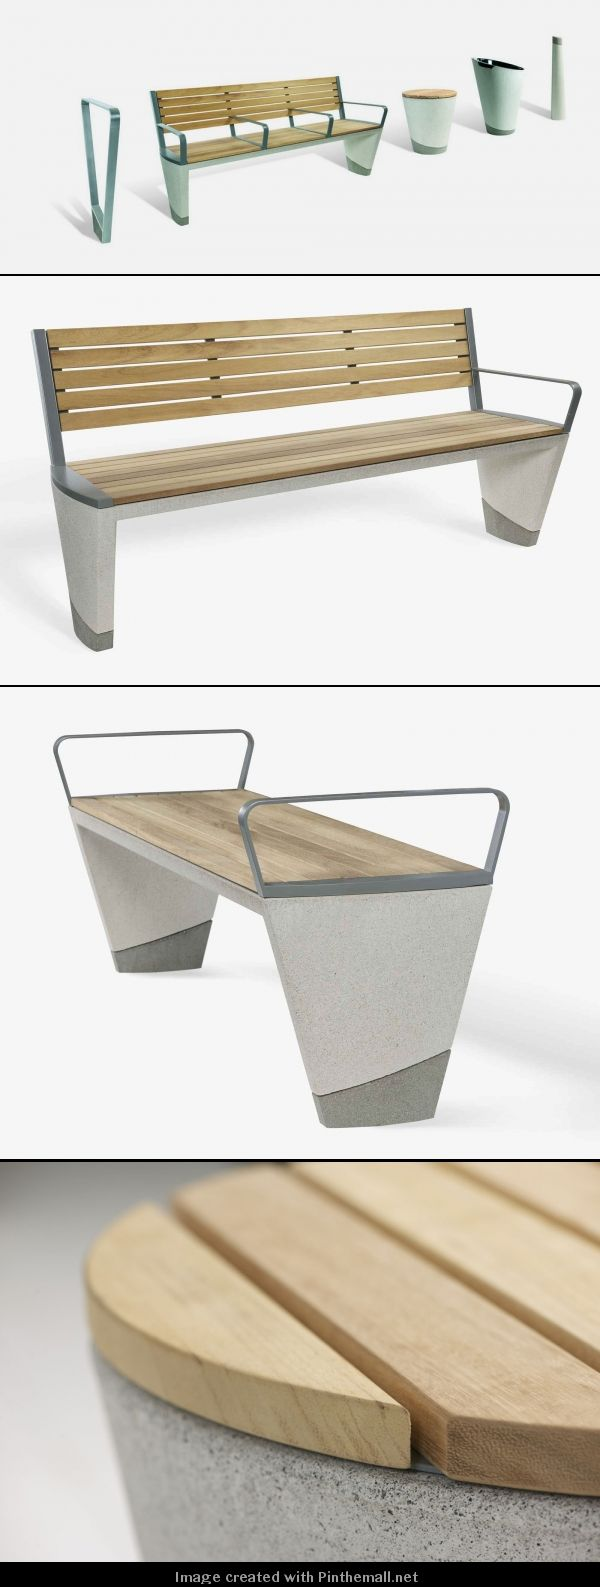 Durability Complimented by Refinement: Coda Concrete Street Furniture Range - Great for Schools, Education Projects. www.woodhouse.co.uk/loci/